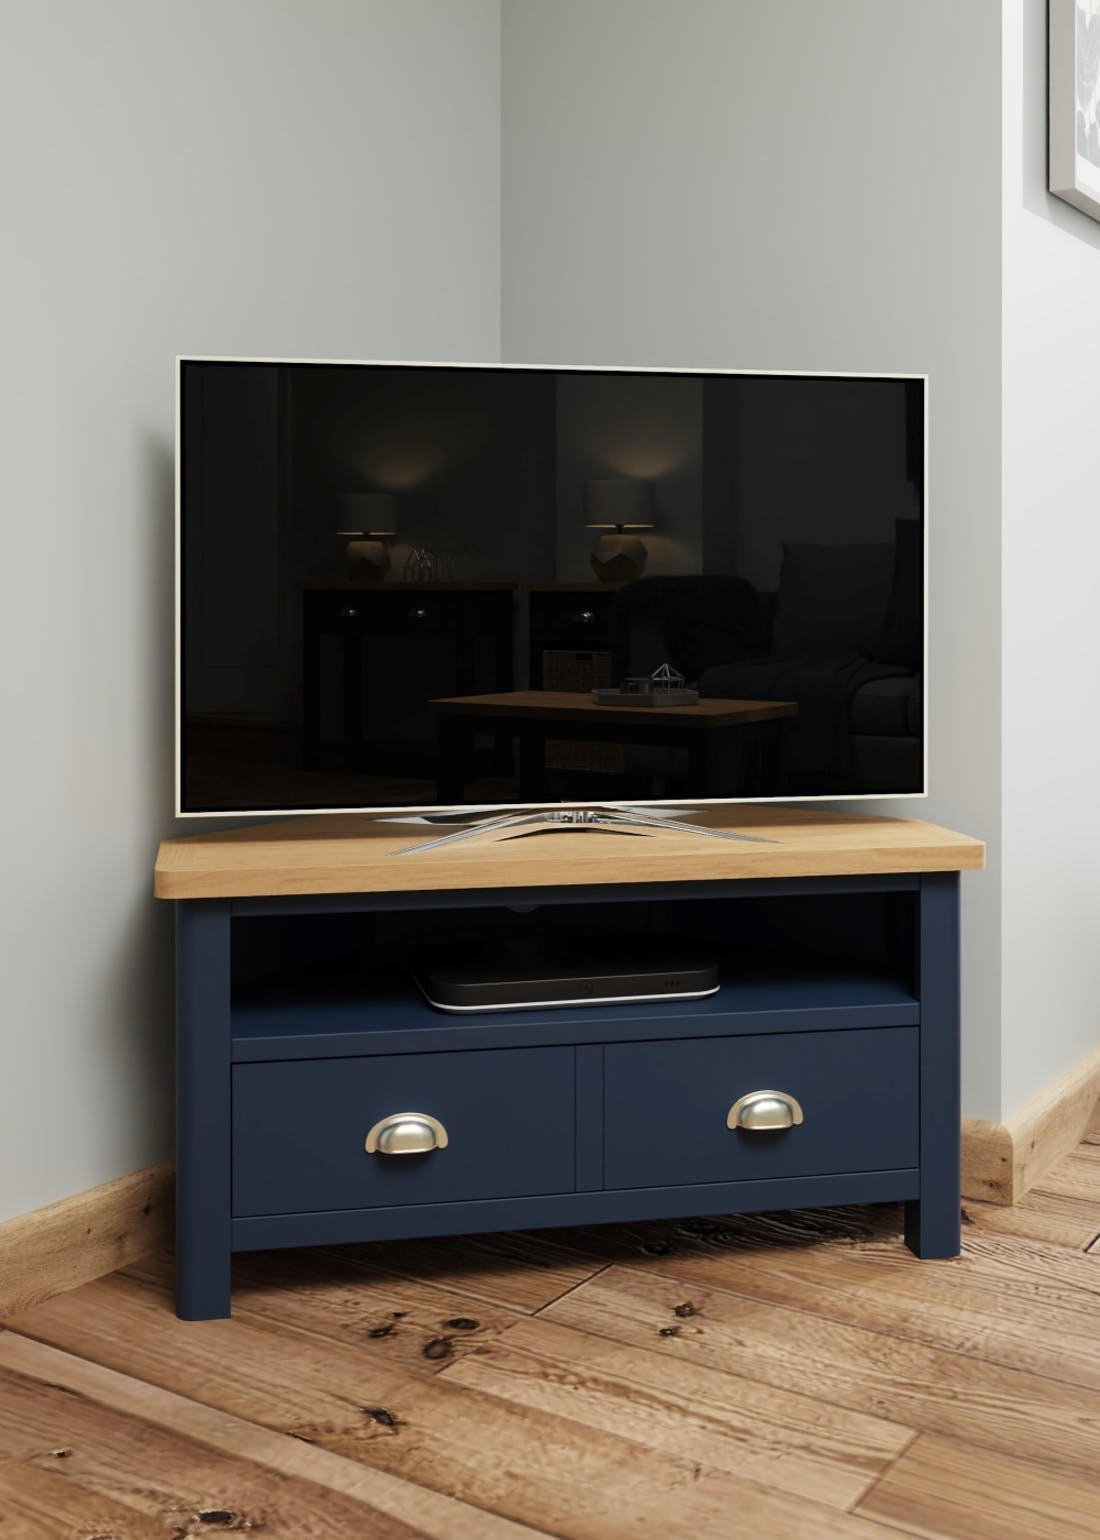 Interiors Direct Reanne Corner TV Unit (90cm x 48cm x 44cm)